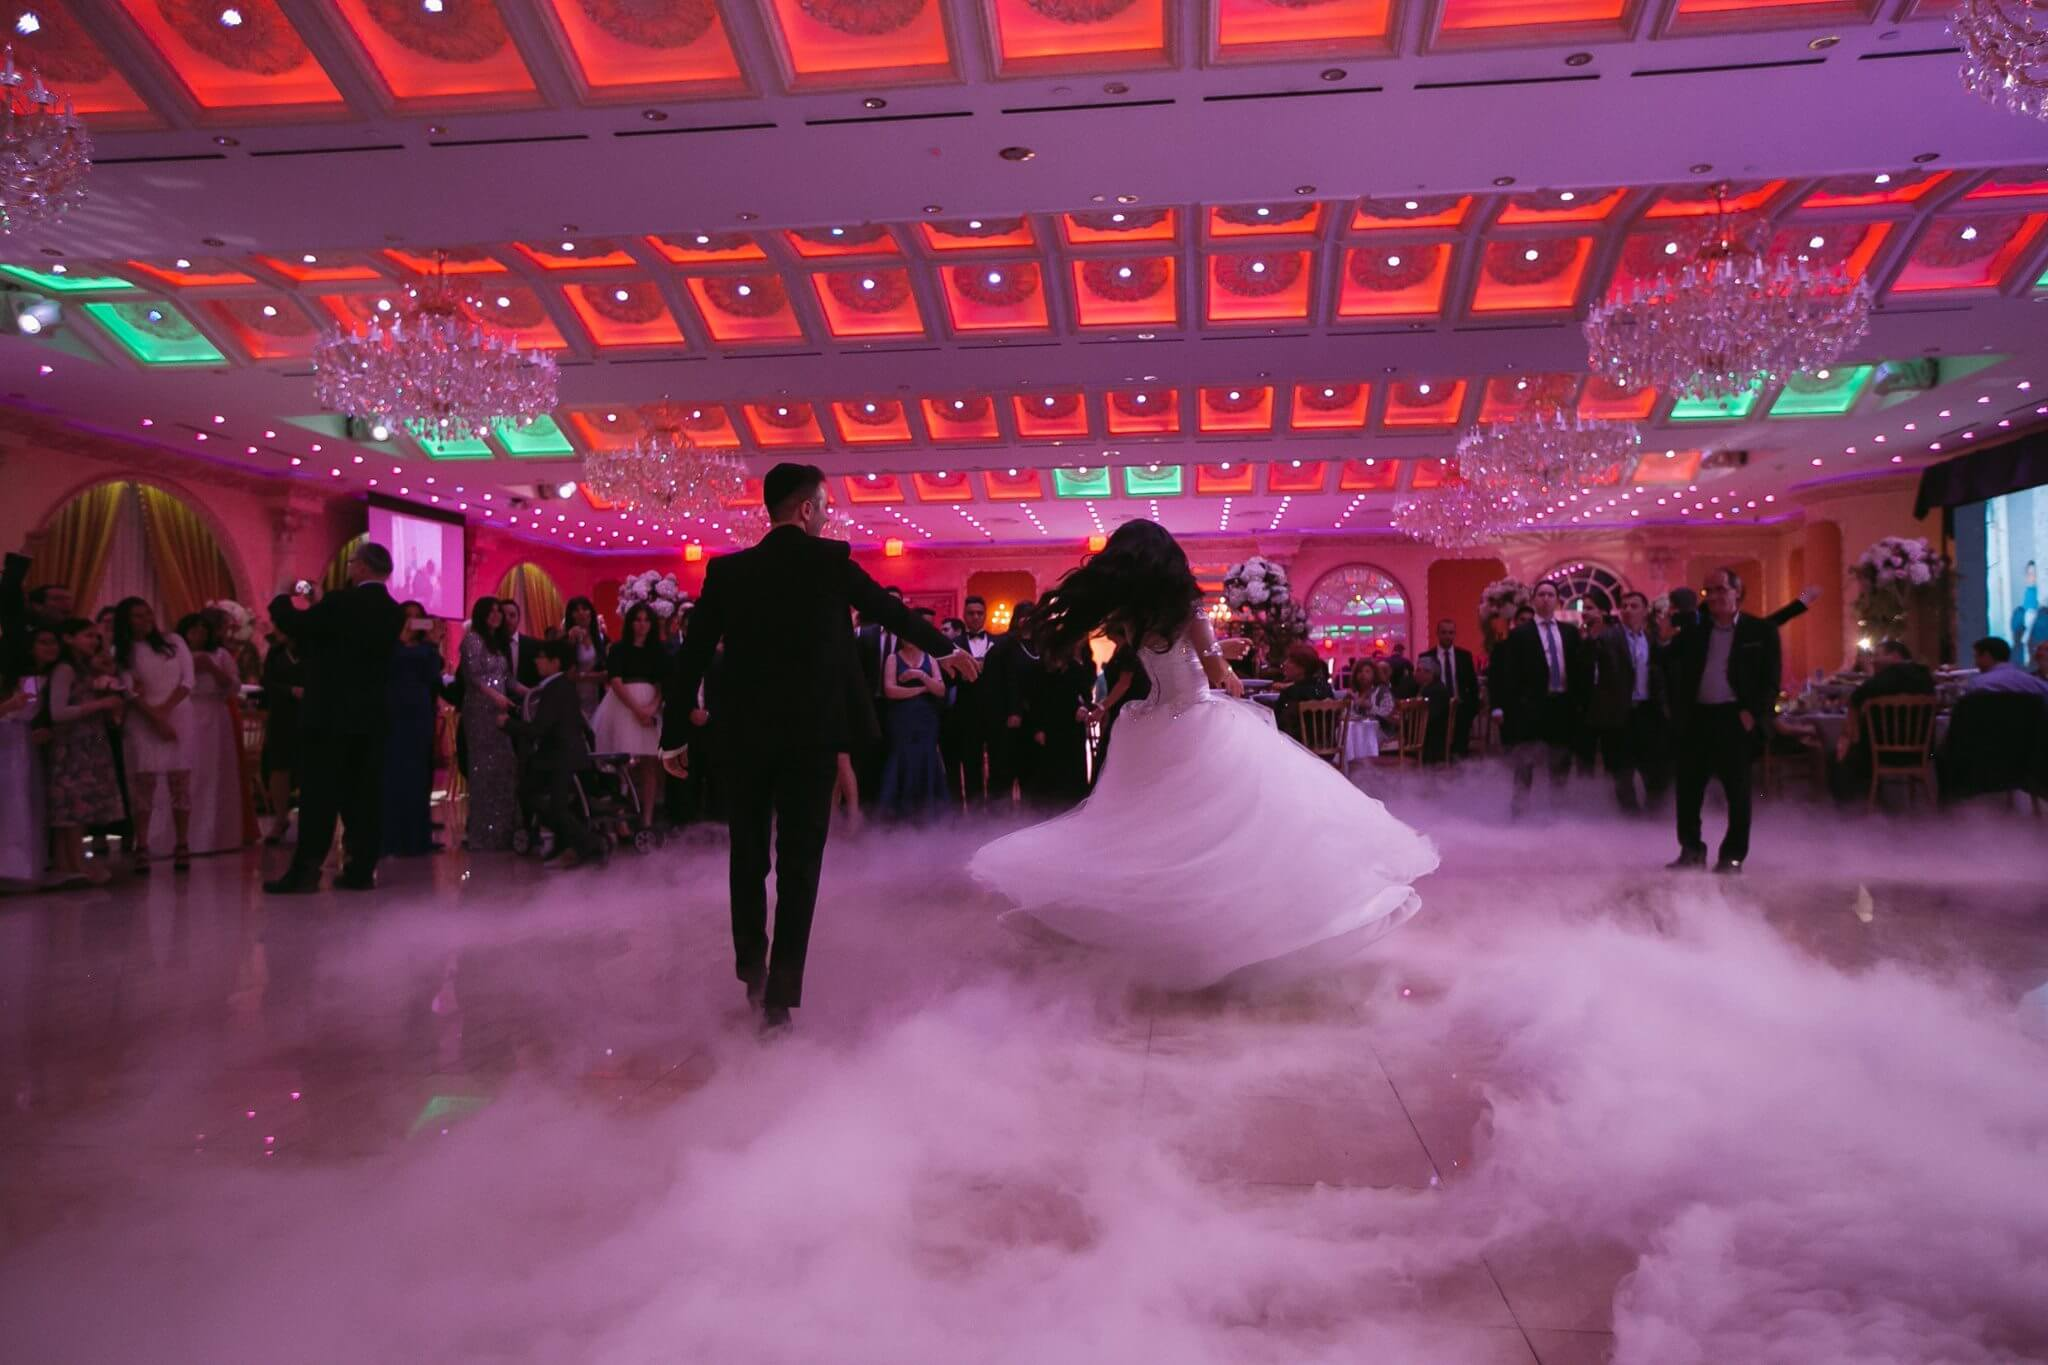 Smoke Machine for bride and groom first dance rental